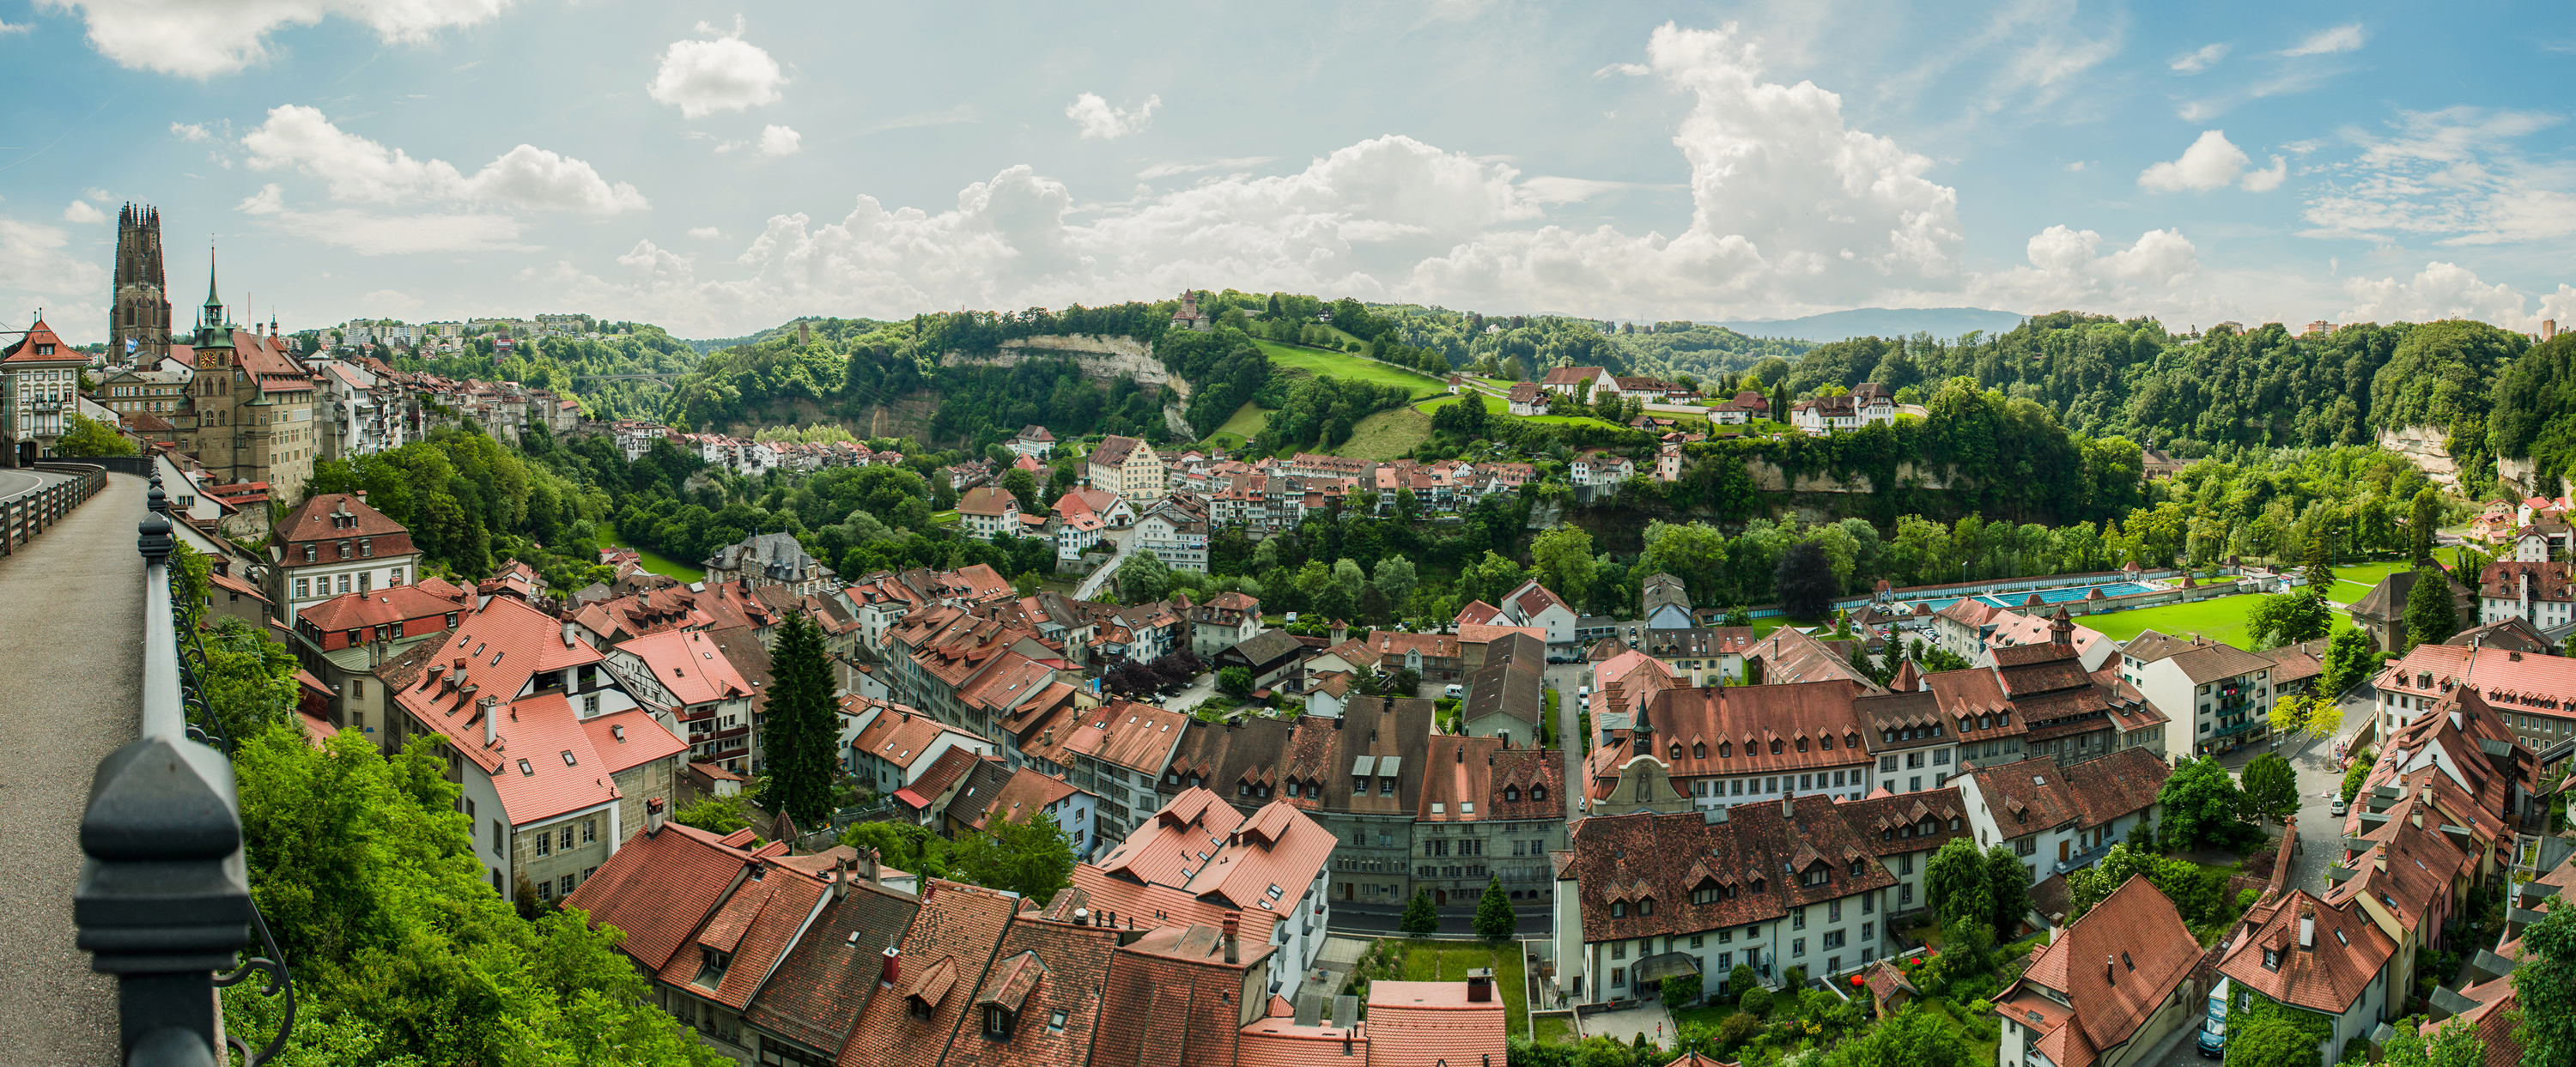 Panorama Fribourg in Switzerland